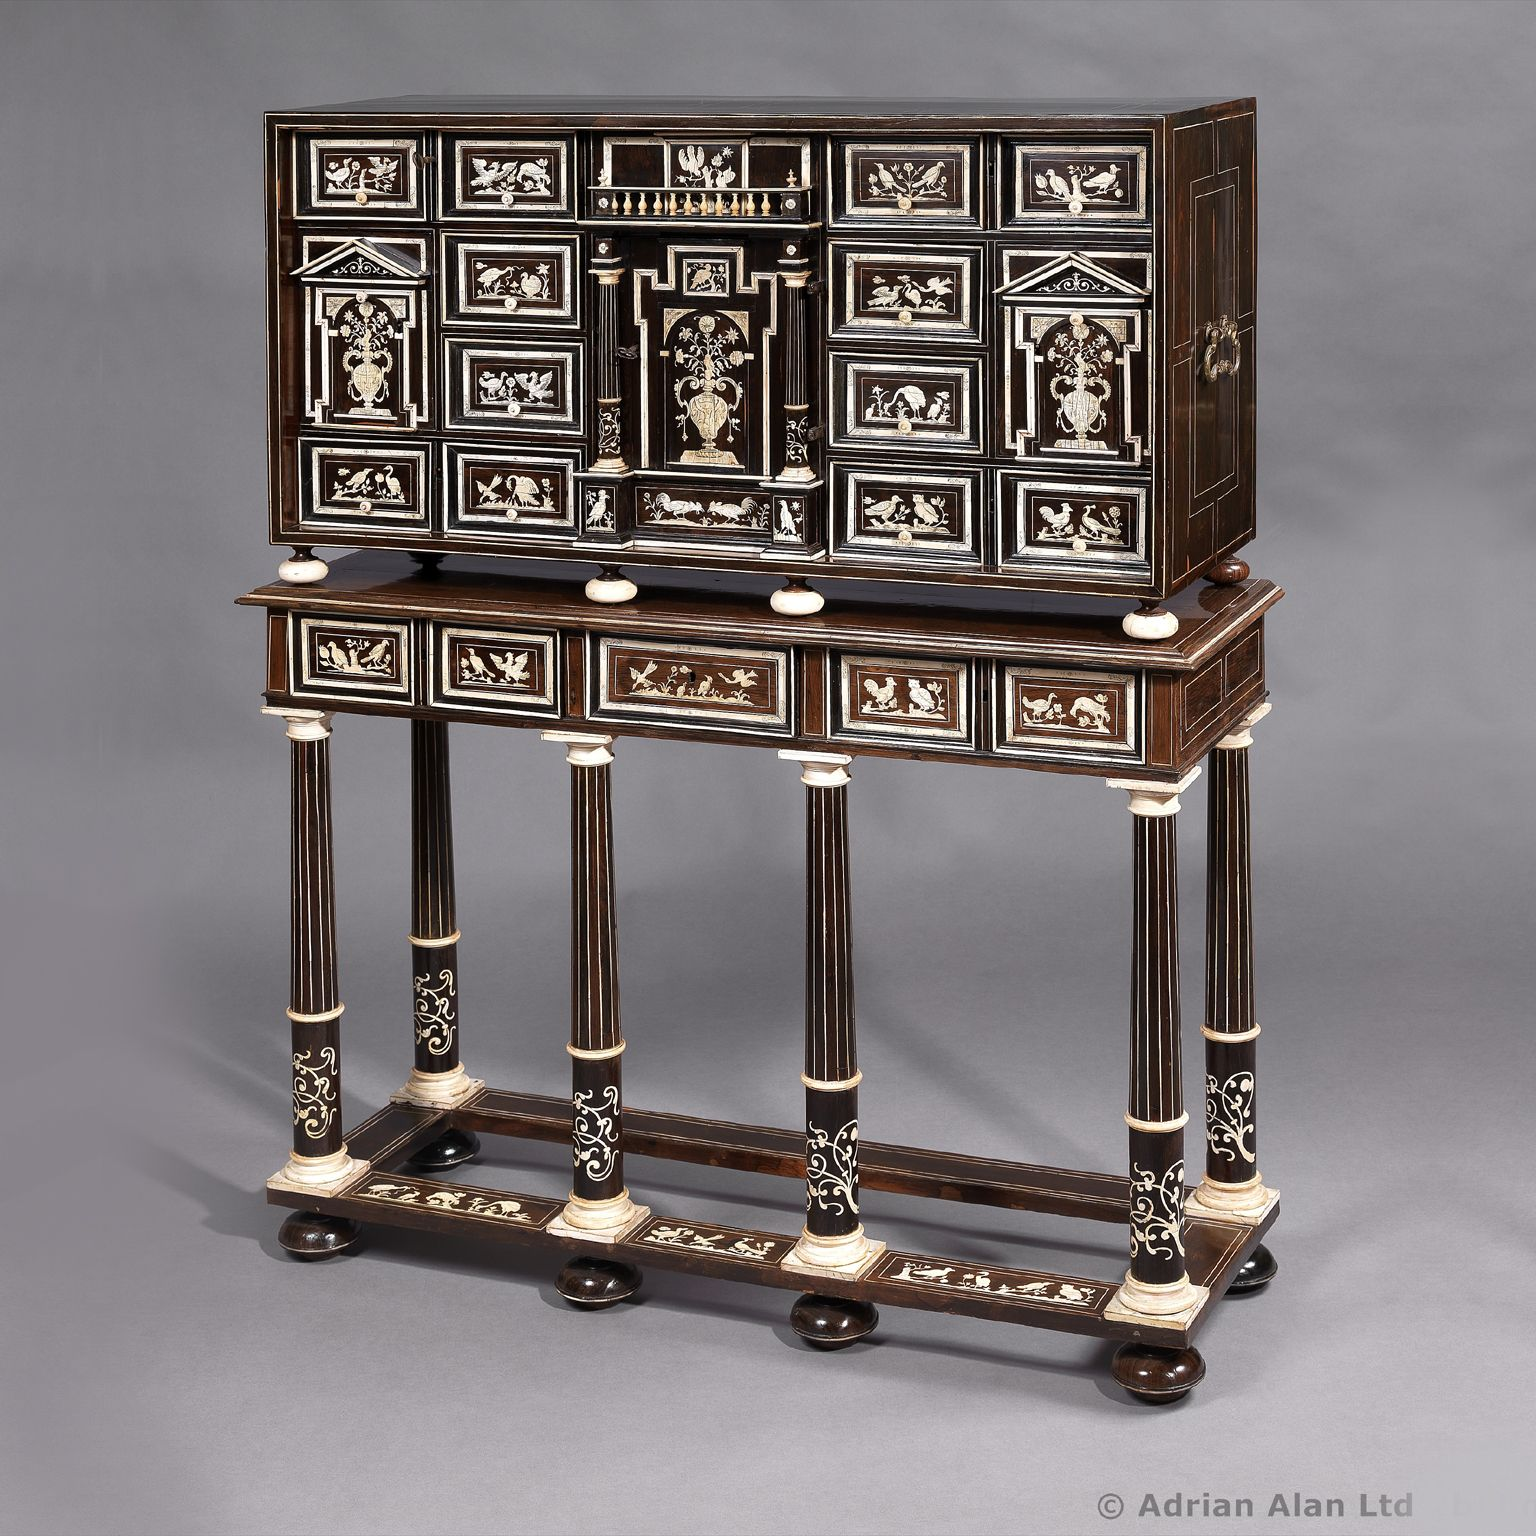 An Exceptional North Italian Rosewood And Ivory Inlaid Marquetry #Cabinet  On Stand   #adrianalan